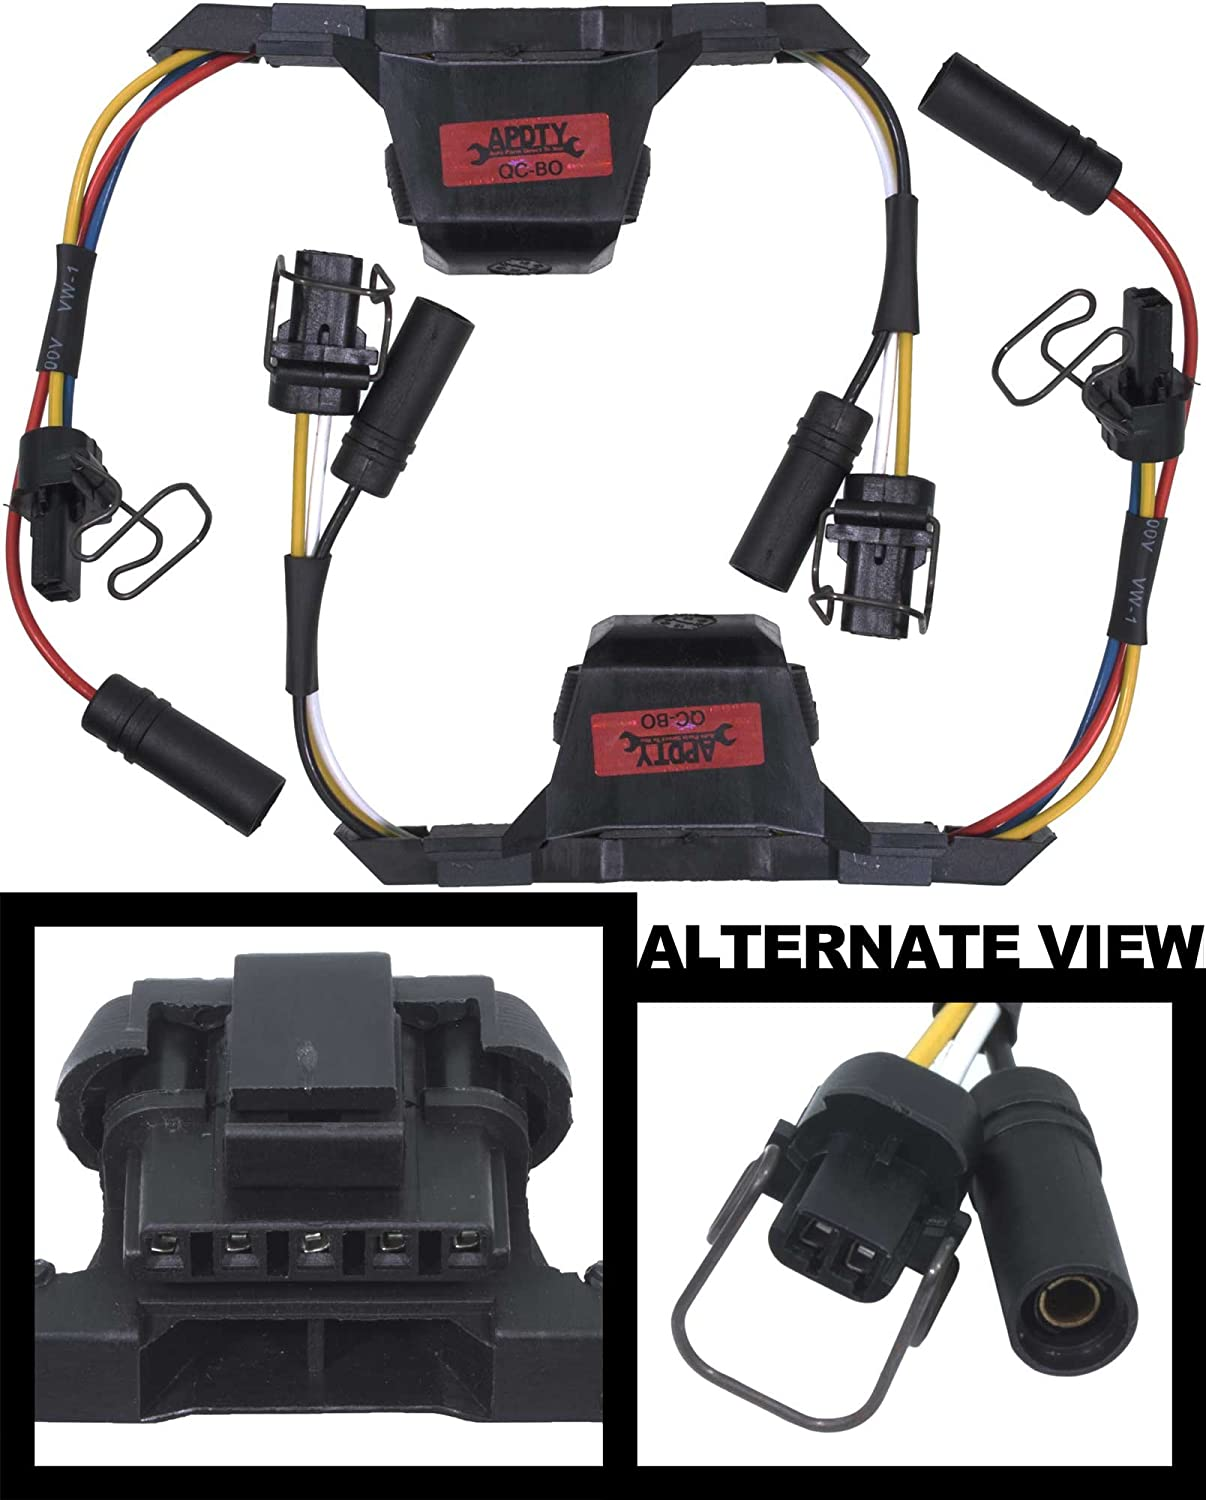 Amazon.com: APDTY 015312 Fuel Injector & Glow Plug Inner Wire Wiring Harness  Set of 2 Fits 1995-1998 Ford E350 F250 F350 w/ 7.3L Powerstroke Diesel  (Replaces F4TZ 9D930-K, 1815923C92): AutomotiveAmazon.com